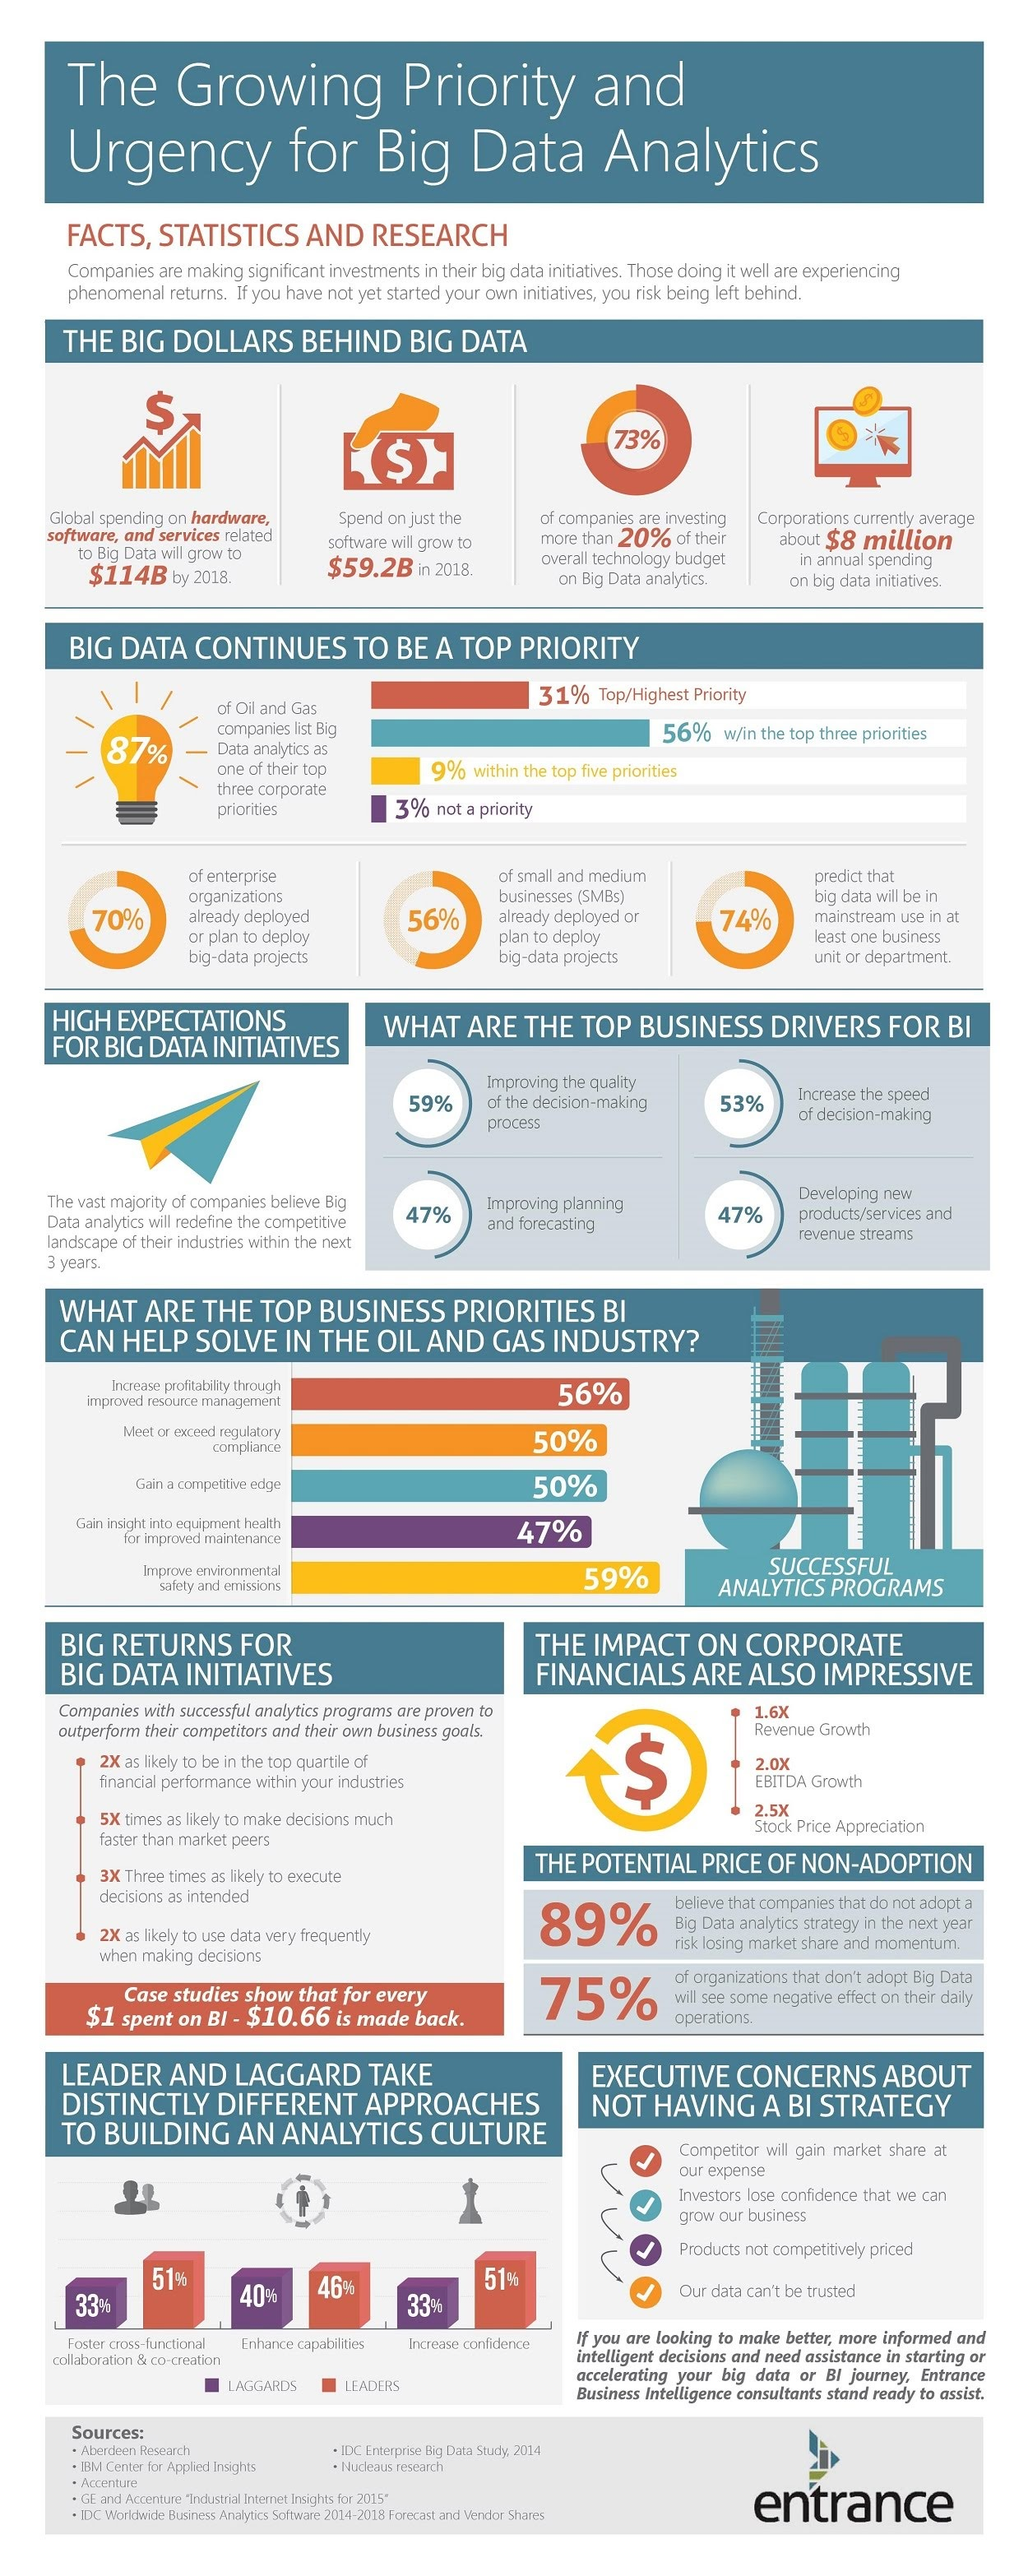 Urgency for Big Data Analytics Infographic #infographic